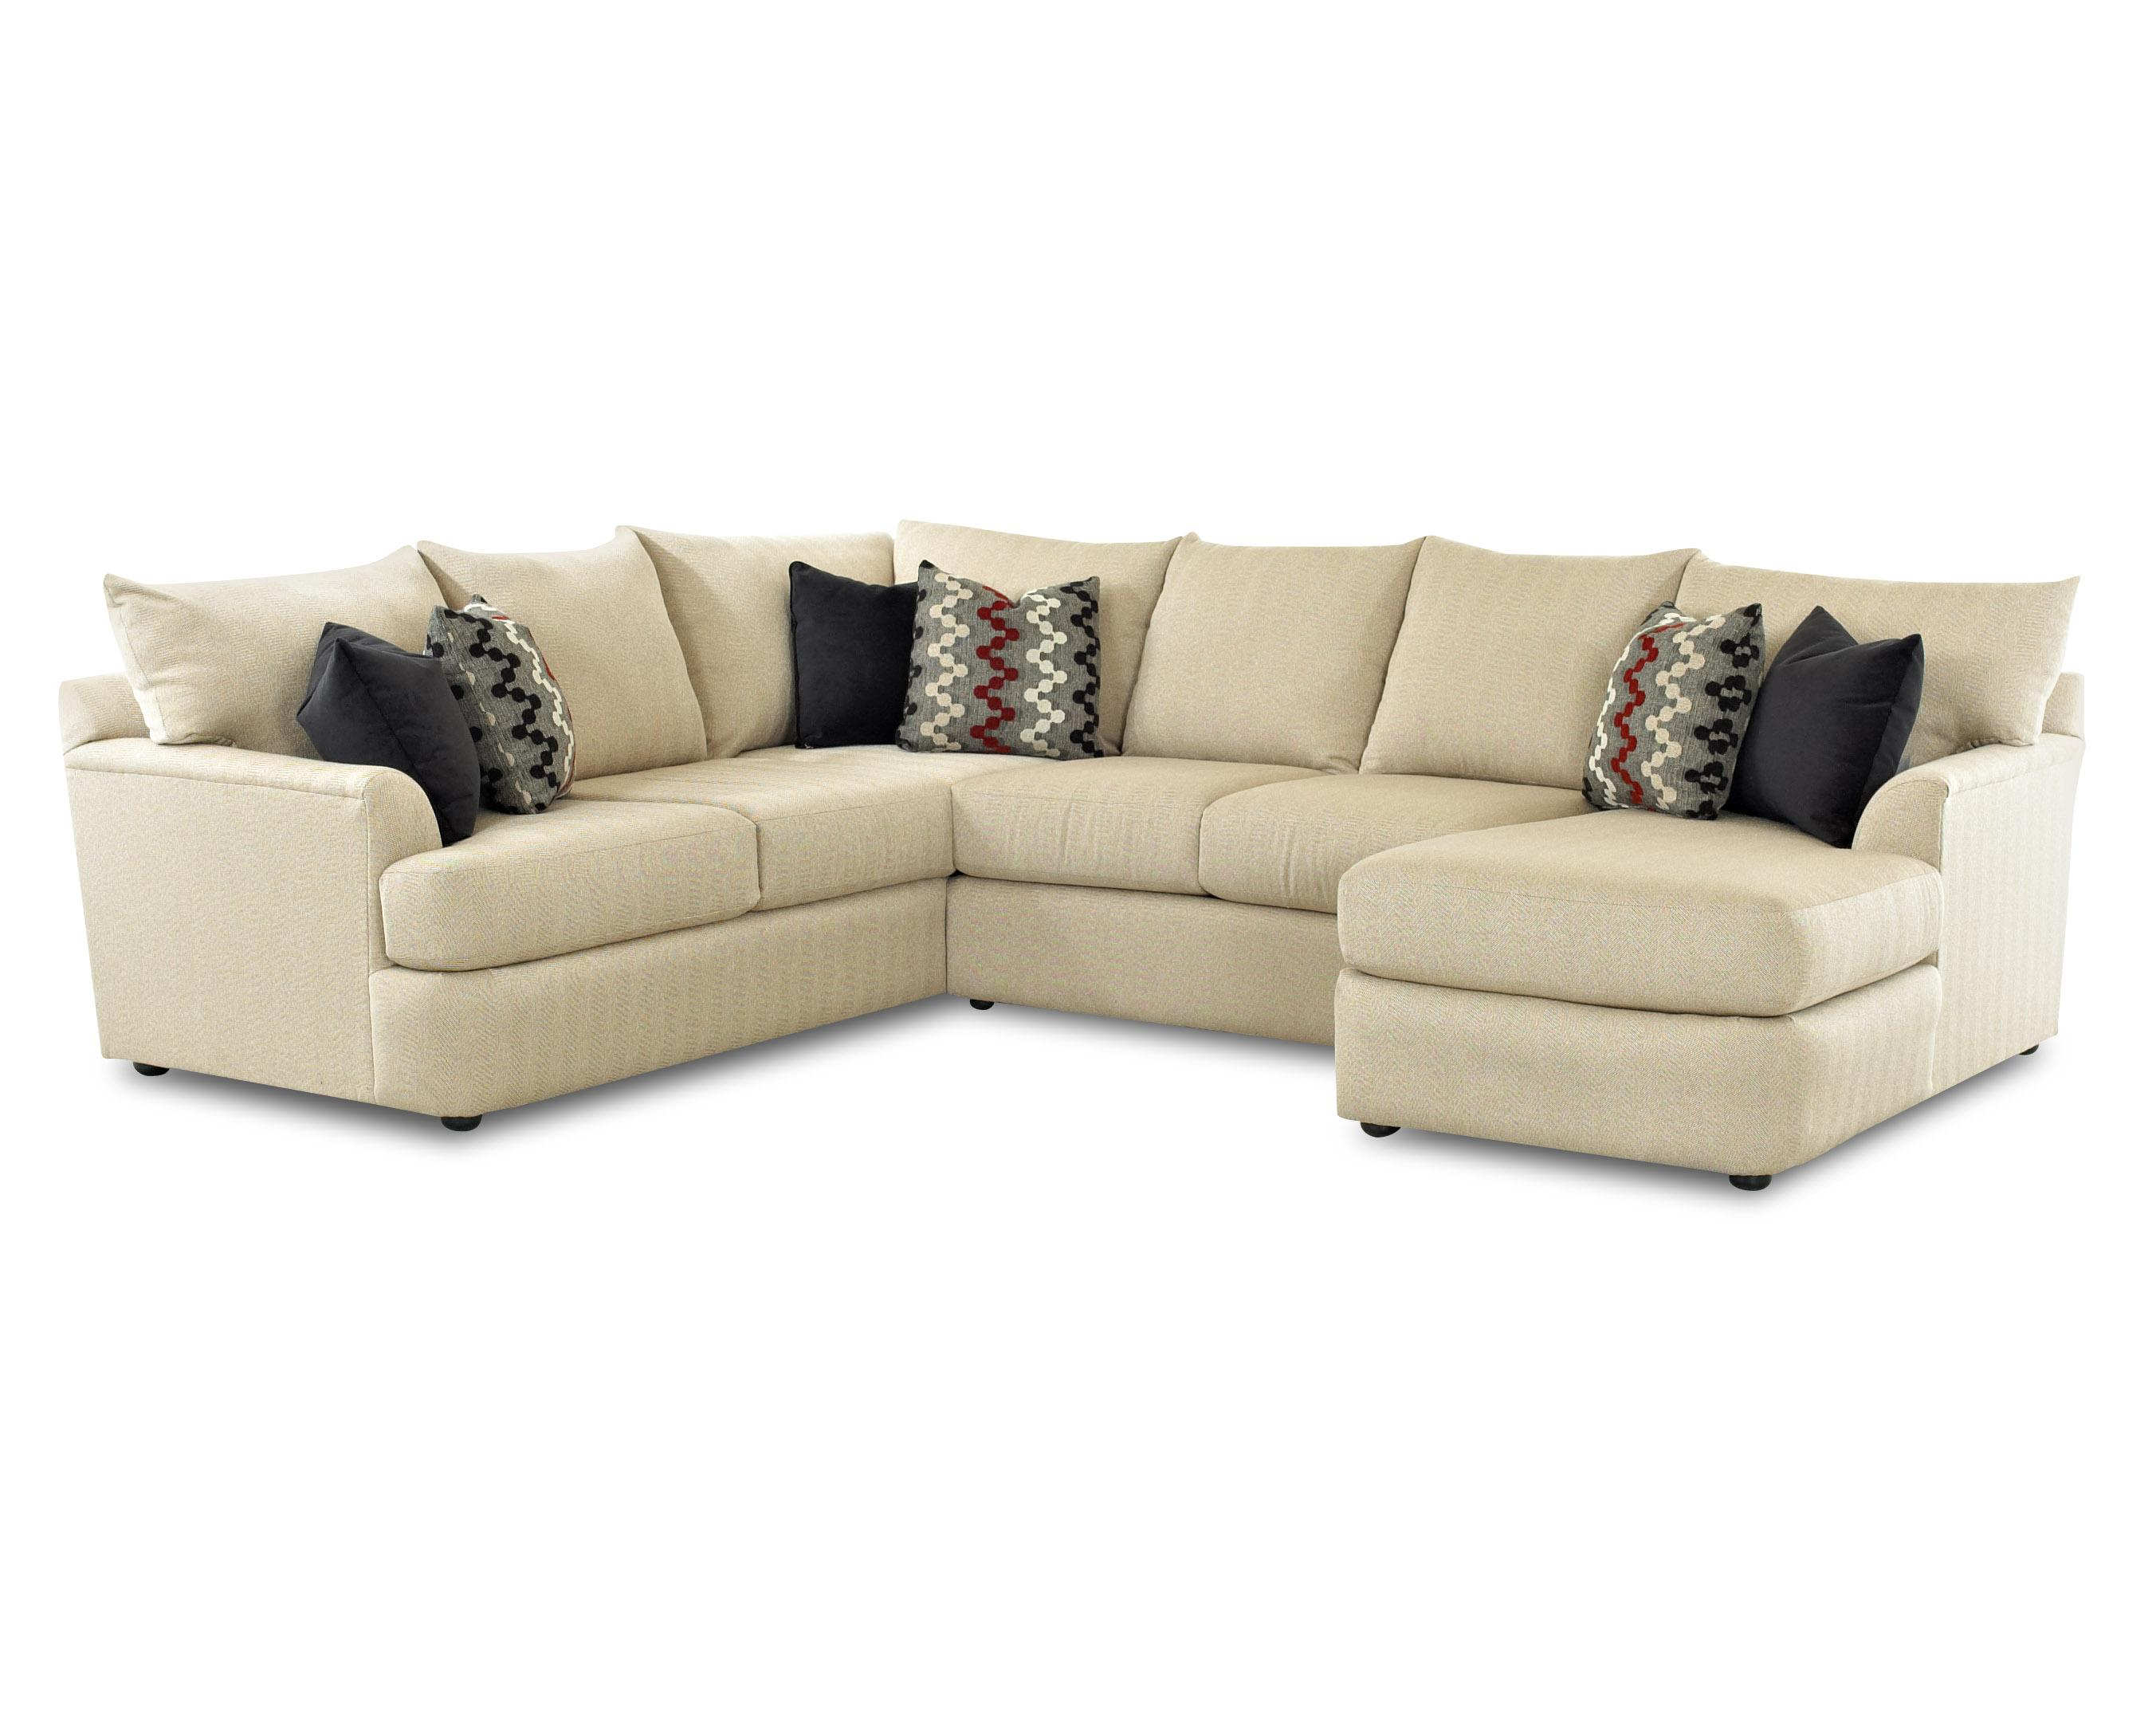 Findley sectional sofa with right arm chaise lounger by for Sectional sofas wolf furniture